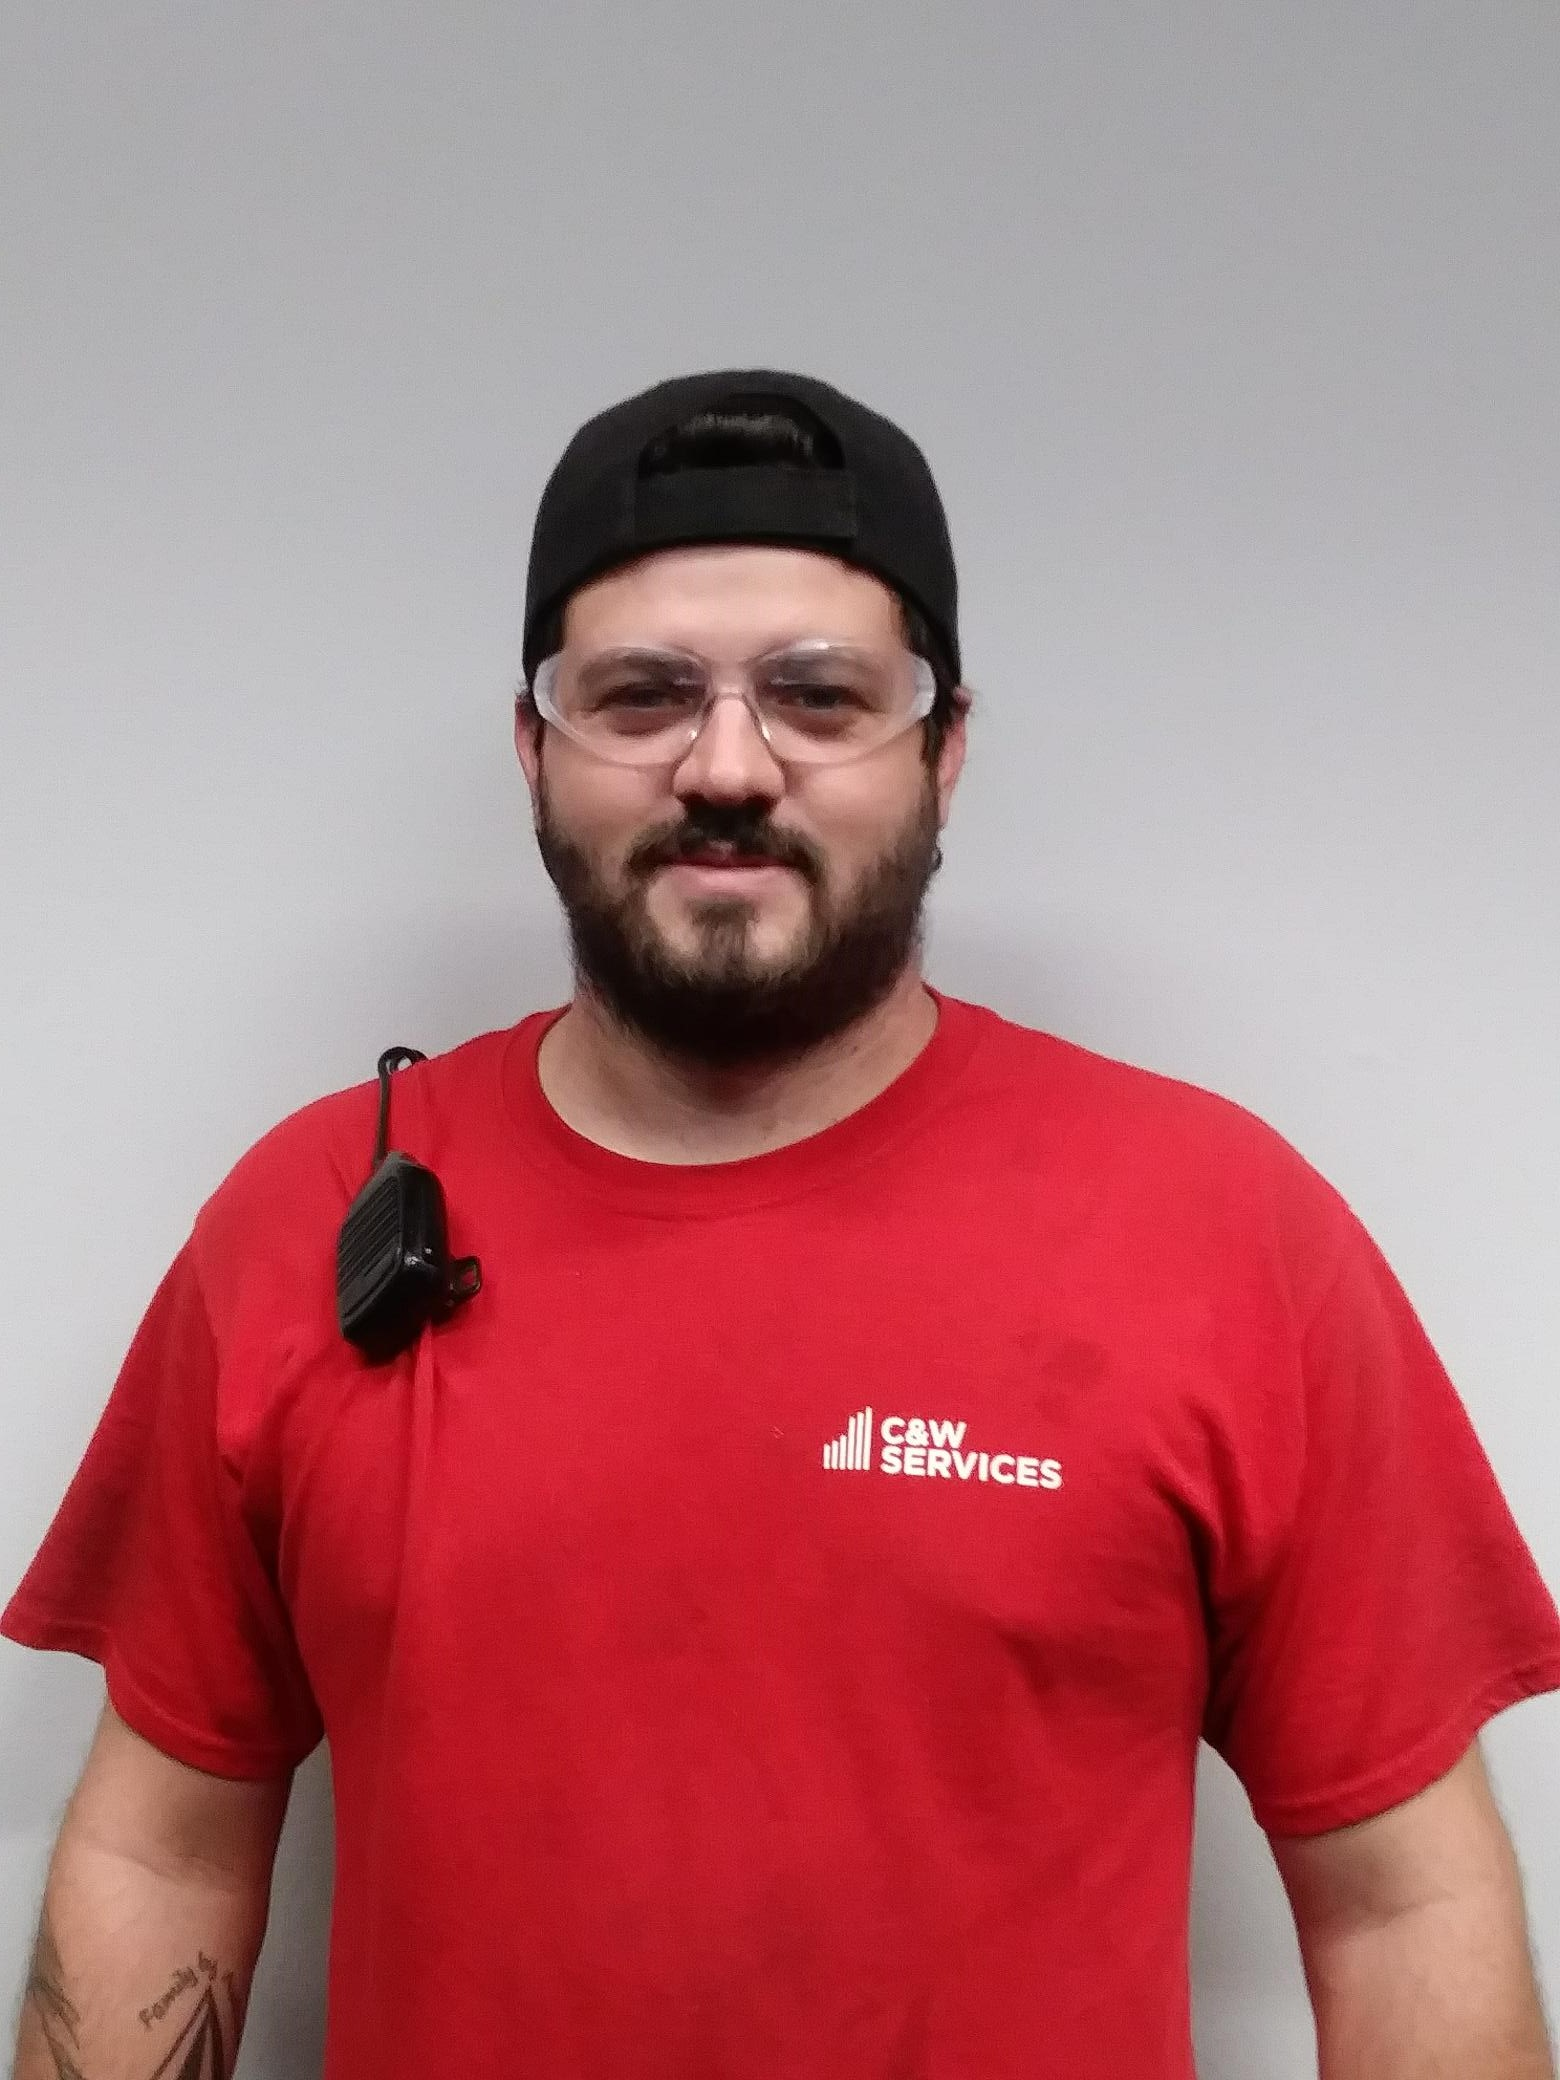 Apprentice Spencer Moore is is an apprentice at Cummins